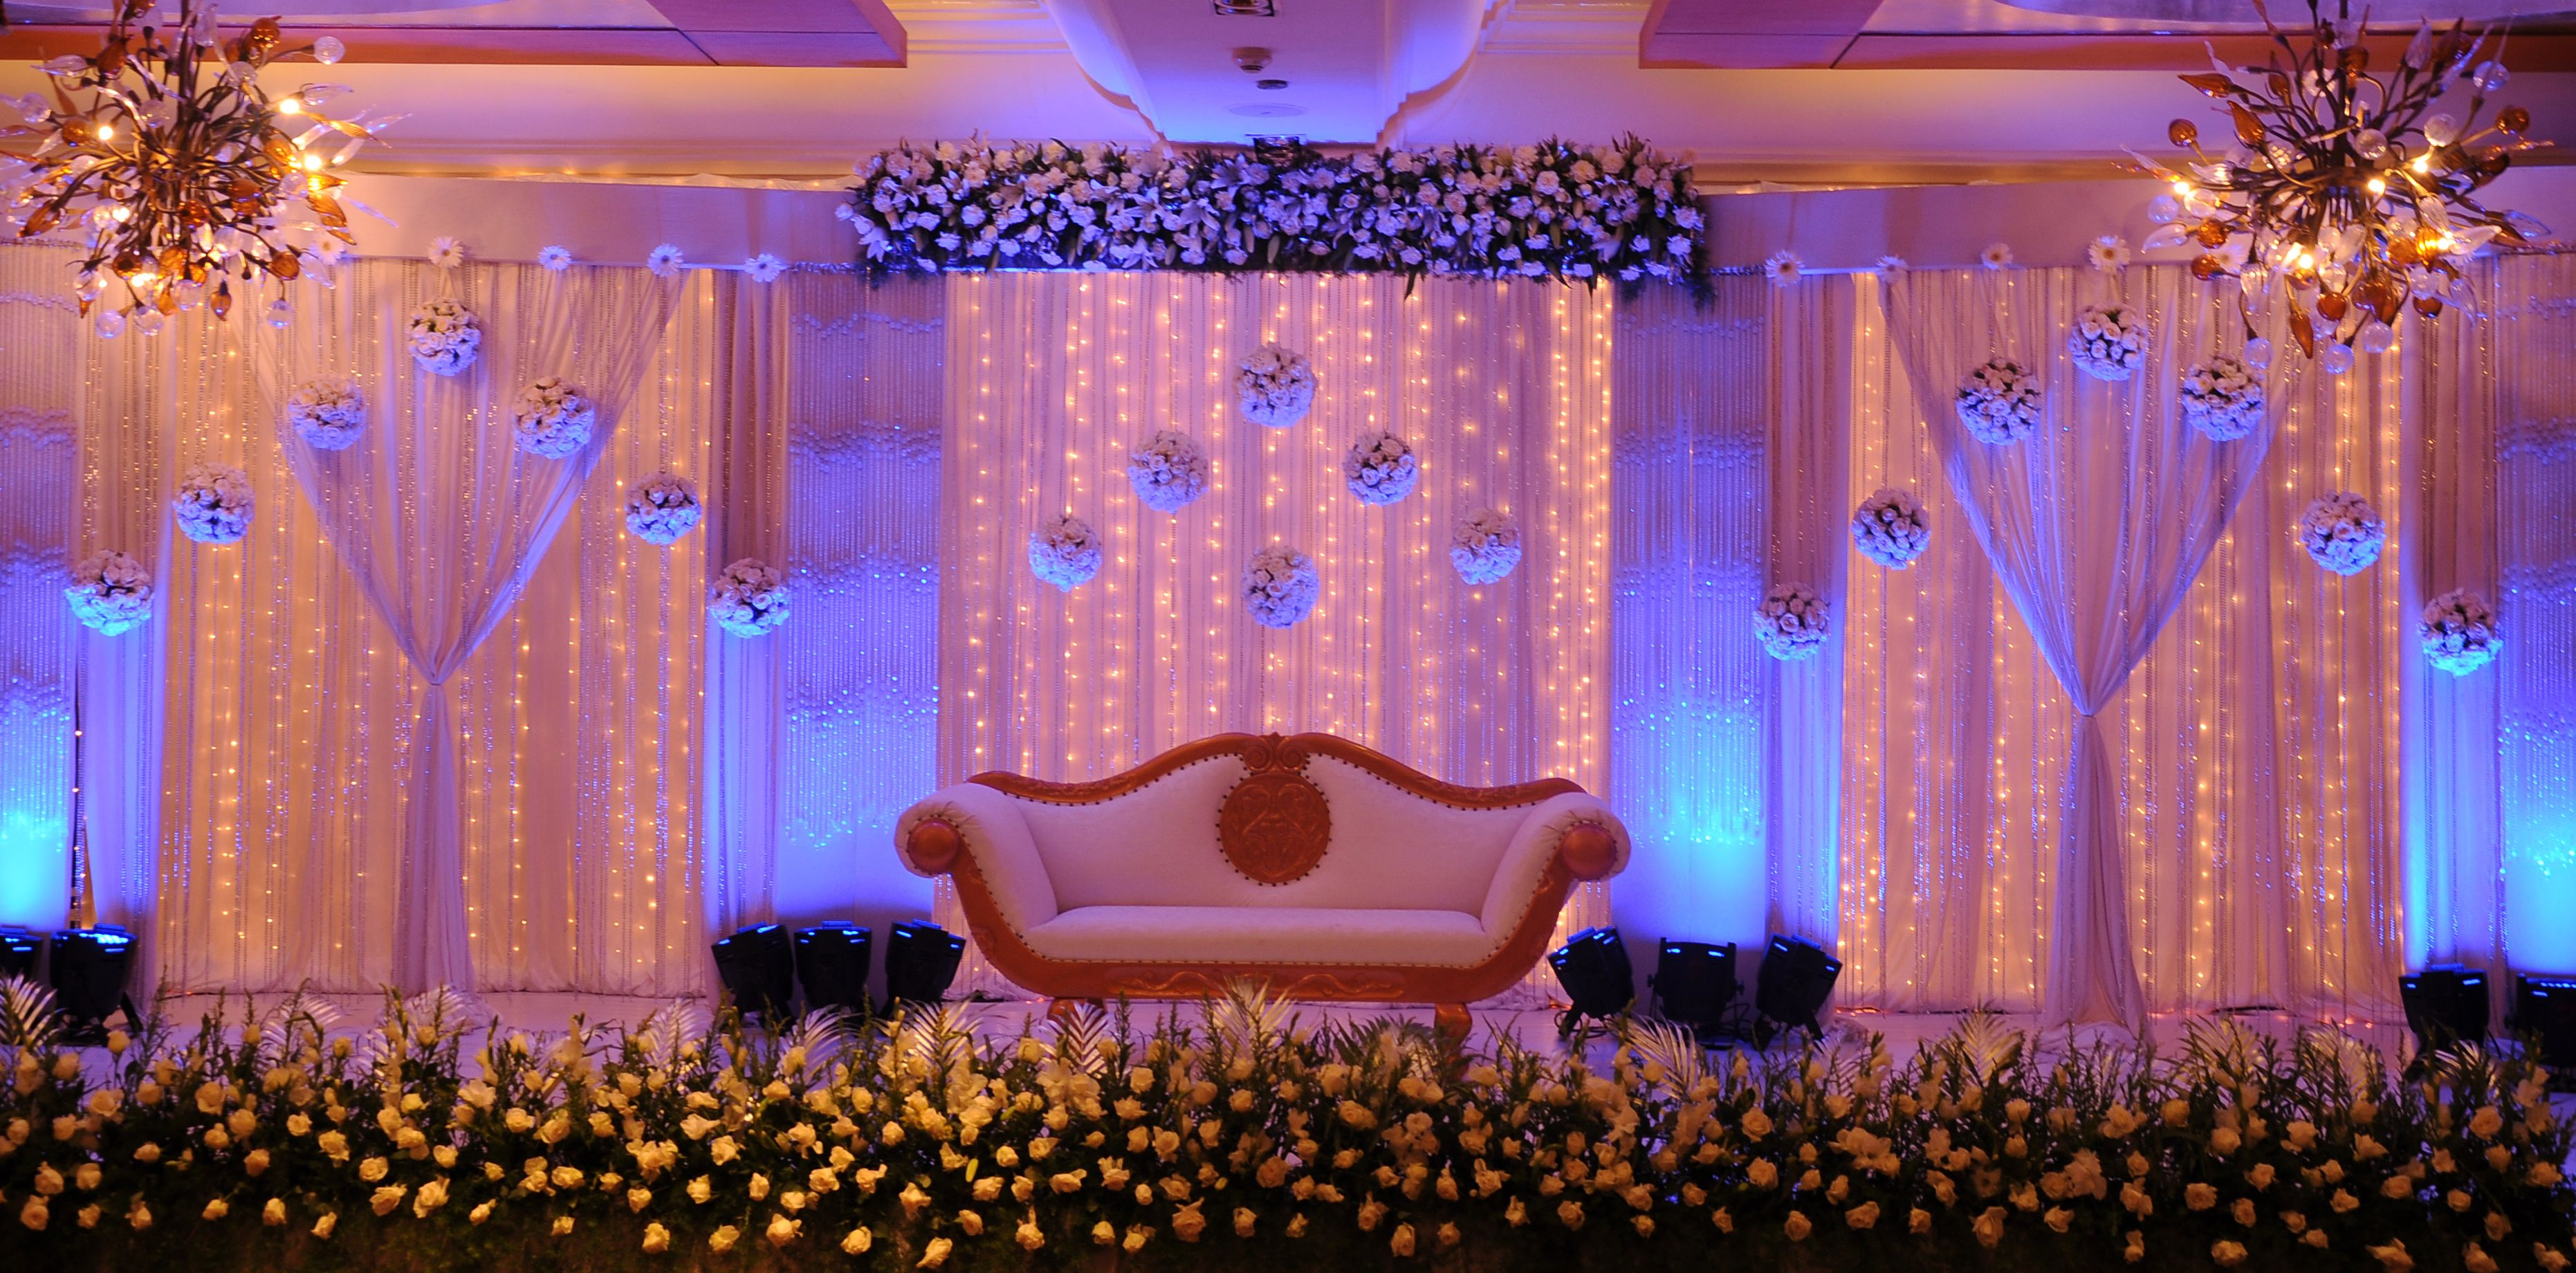 Stage Decoration Pin By Wedding Dot Com On Wedding Decorations In 2019 Pinterest